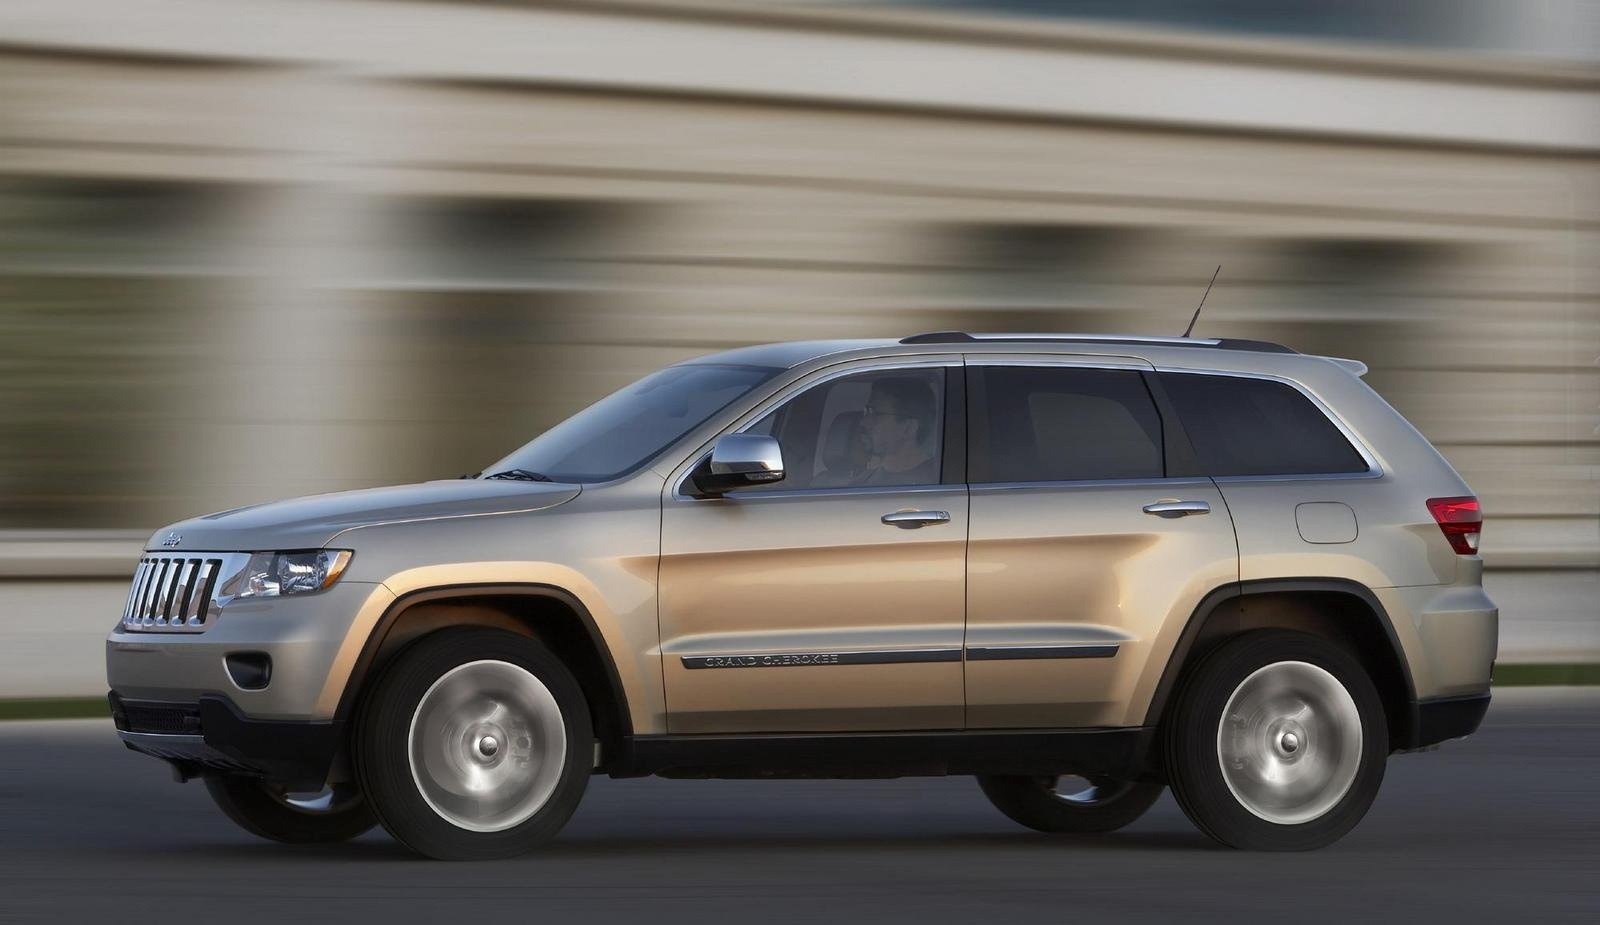 2011 jeep grand cherokee review top speed. Black Bedroom Furniture Sets. Home Design Ideas